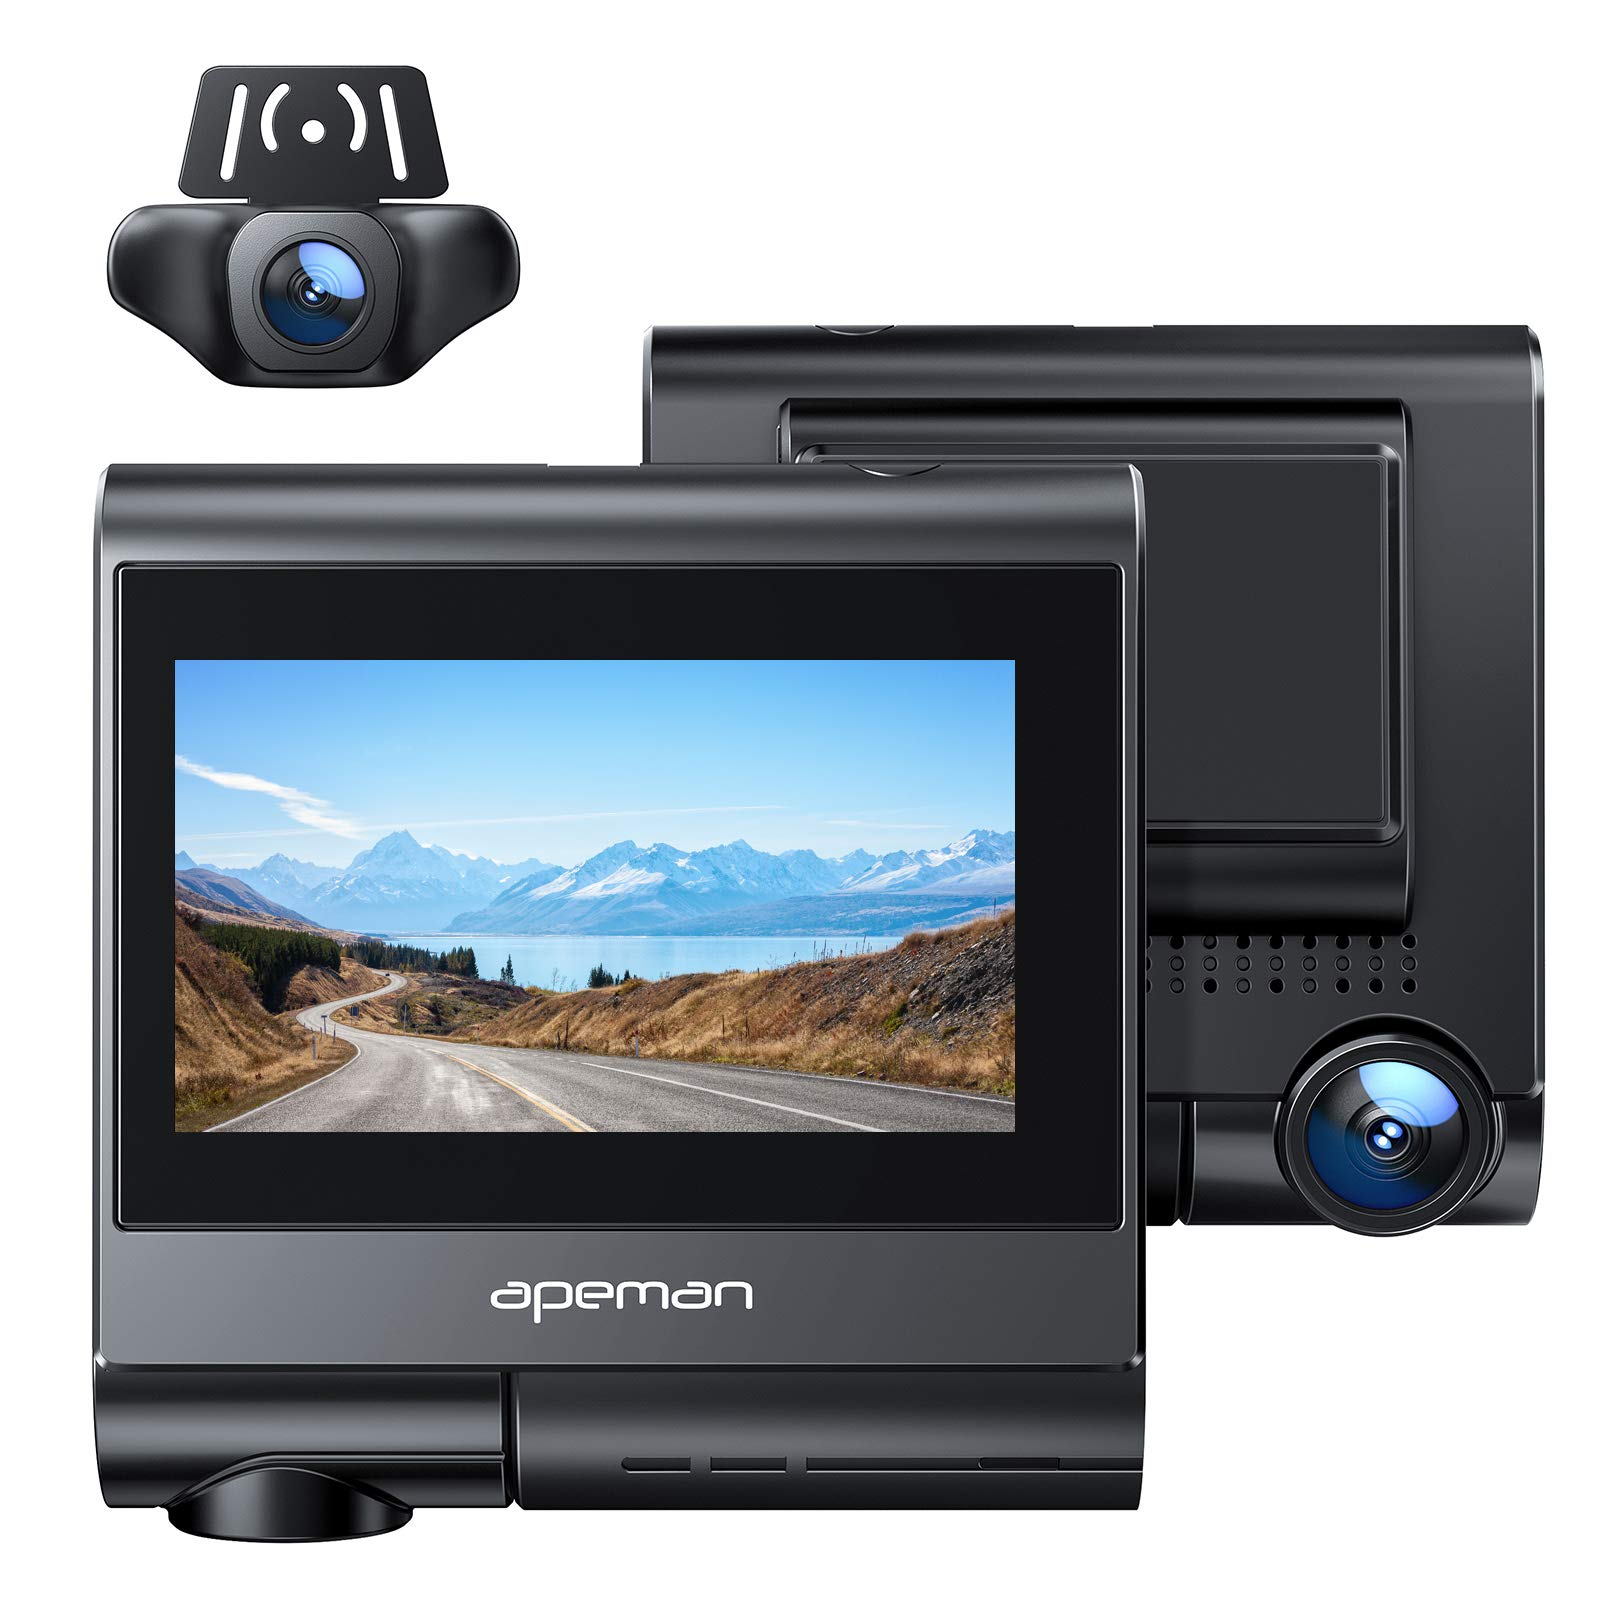 APEMAN 4K max Dash Cam with OLED Touch Screen, Built-in GPS, Wi-Fi, Both 1080P Front and Rear Dual Dash Camera for Cars with Sony Sensor, Parking Mode, Motion Detection, G-Sensor